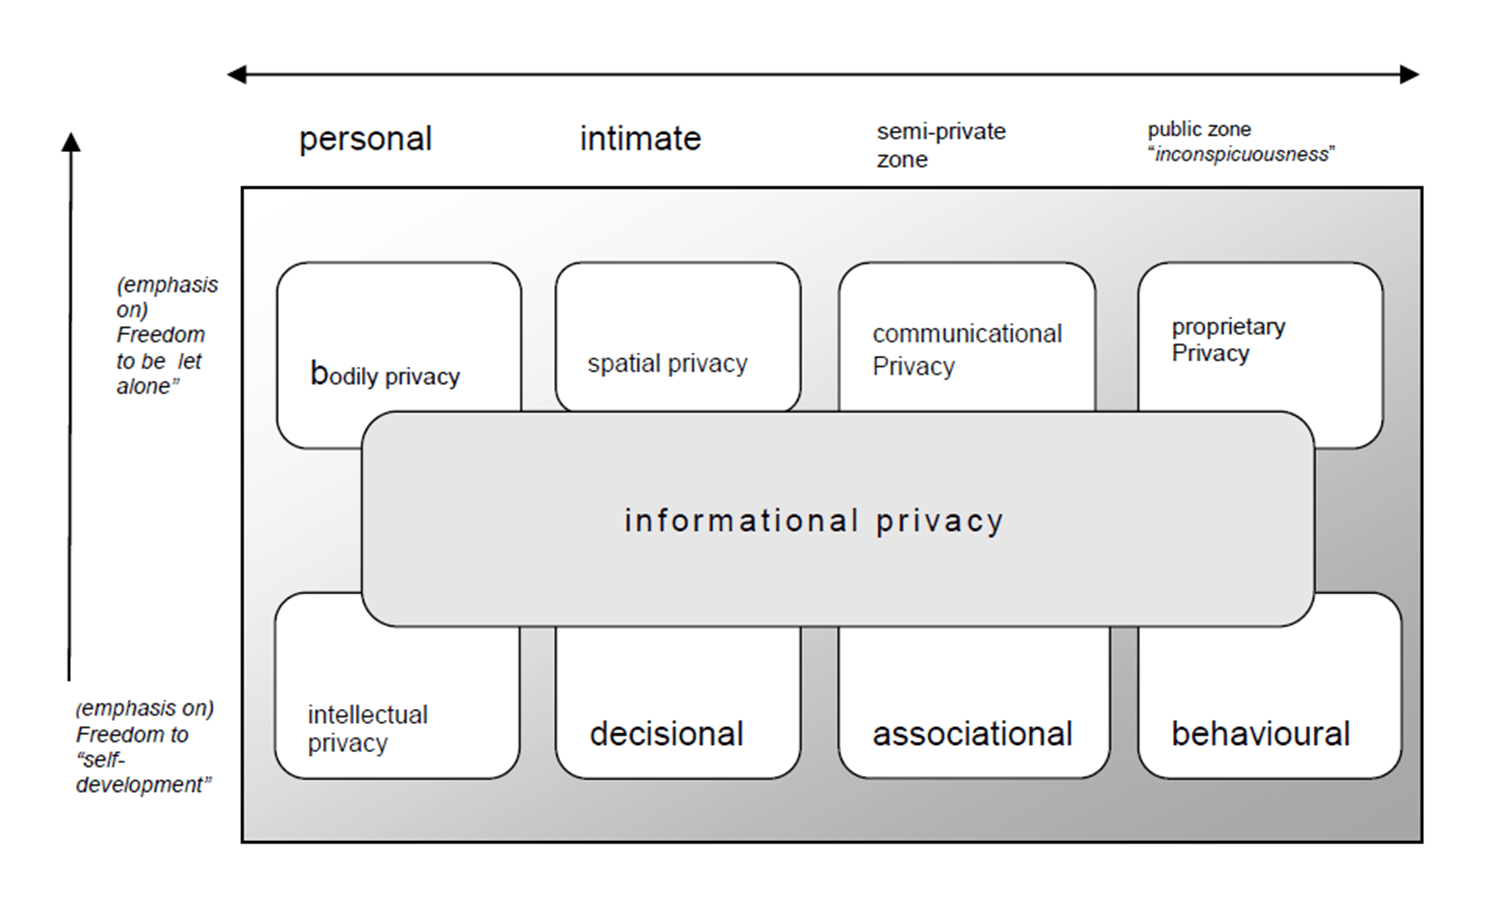 1493ab298 The judgment refers with approval to the 2012 Report of the Expert Group on  Privacy [pdf] – which sets out nine principles (which have much in common  with ...